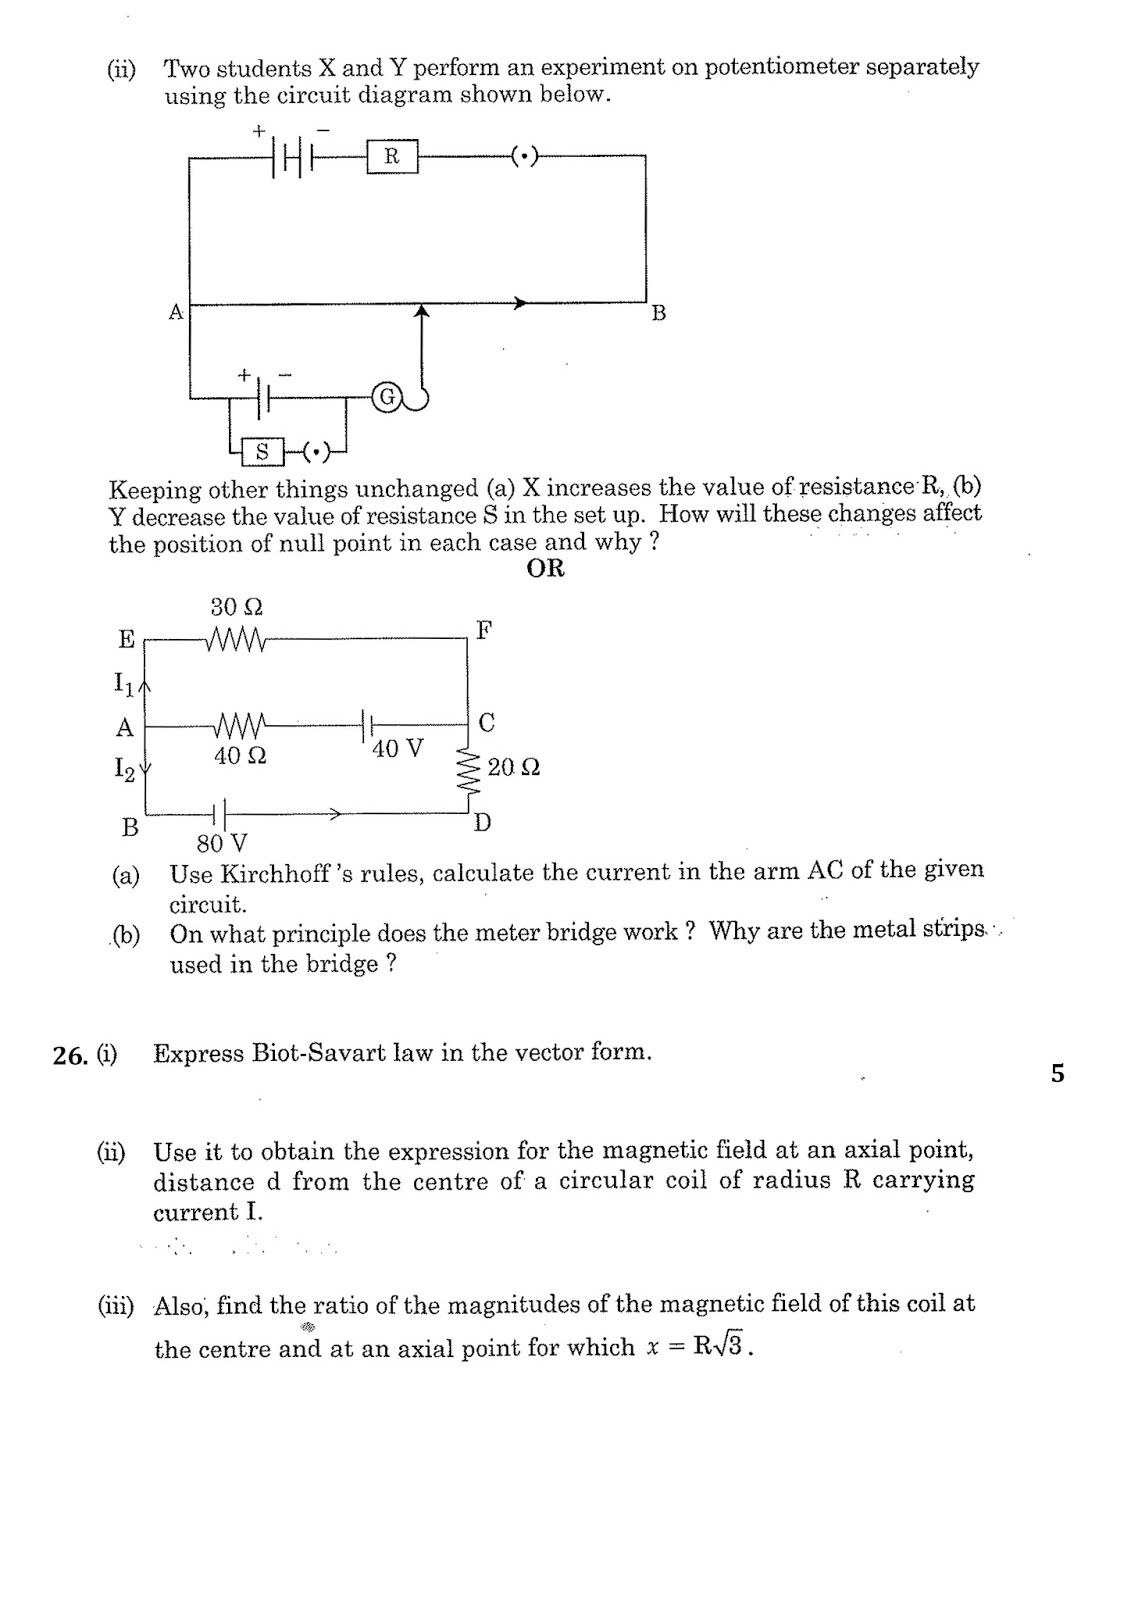 Chalapathiphysics4you Cbse Physics Question Paper 2016 Circuit Diagram Rules Posted By At 0709